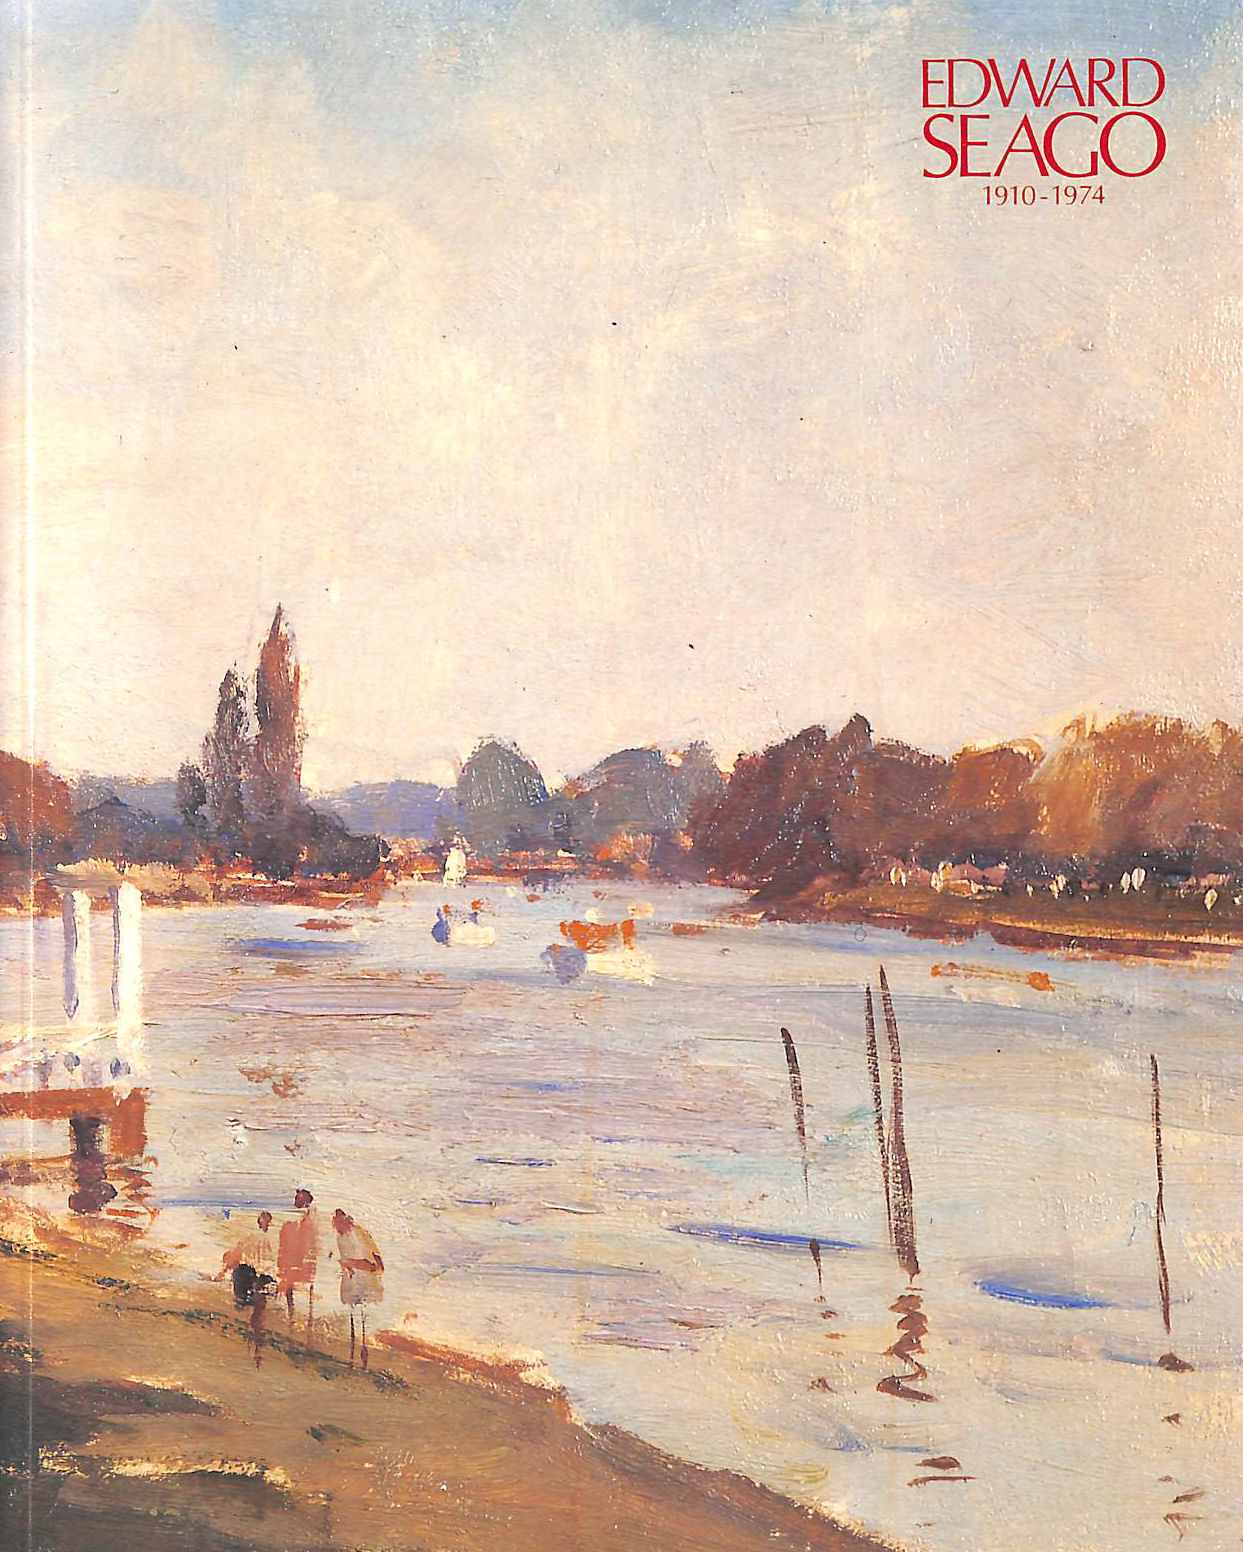 Image for Edward Seago 1910-1974: Catalogue of an exhibition Richard Green Gallery 1986